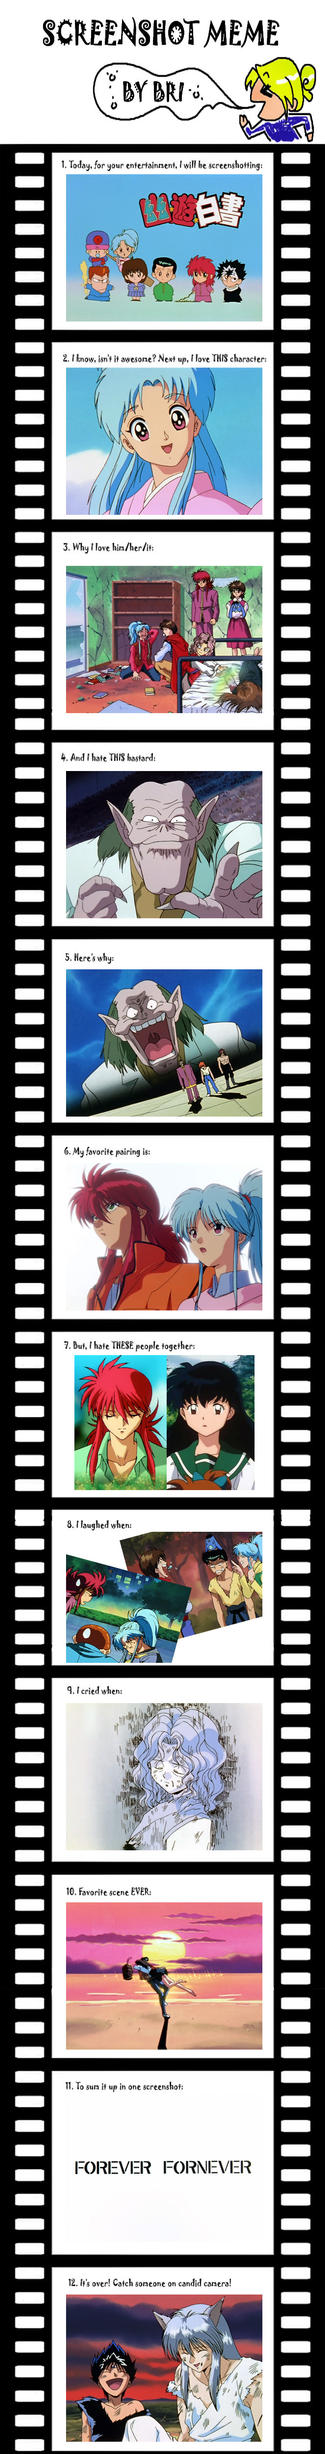 Screenshot Meme: Yu Yu Hakusho by radioactiveshake